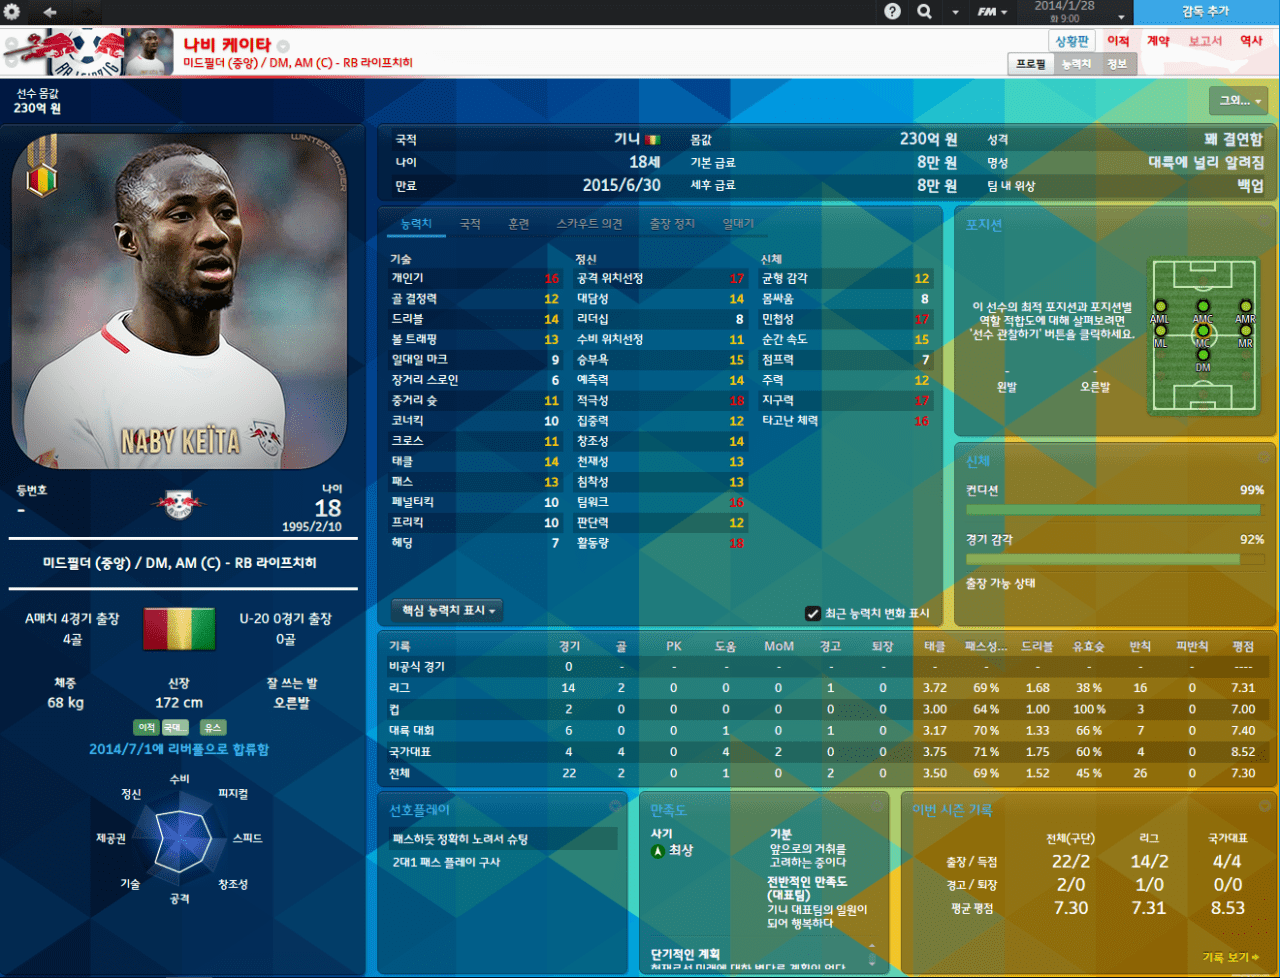 keita.PNG [14.3.1] Football Manager 2014 17-18 EU Transfer FMDONG ROSTER BETA v0.61